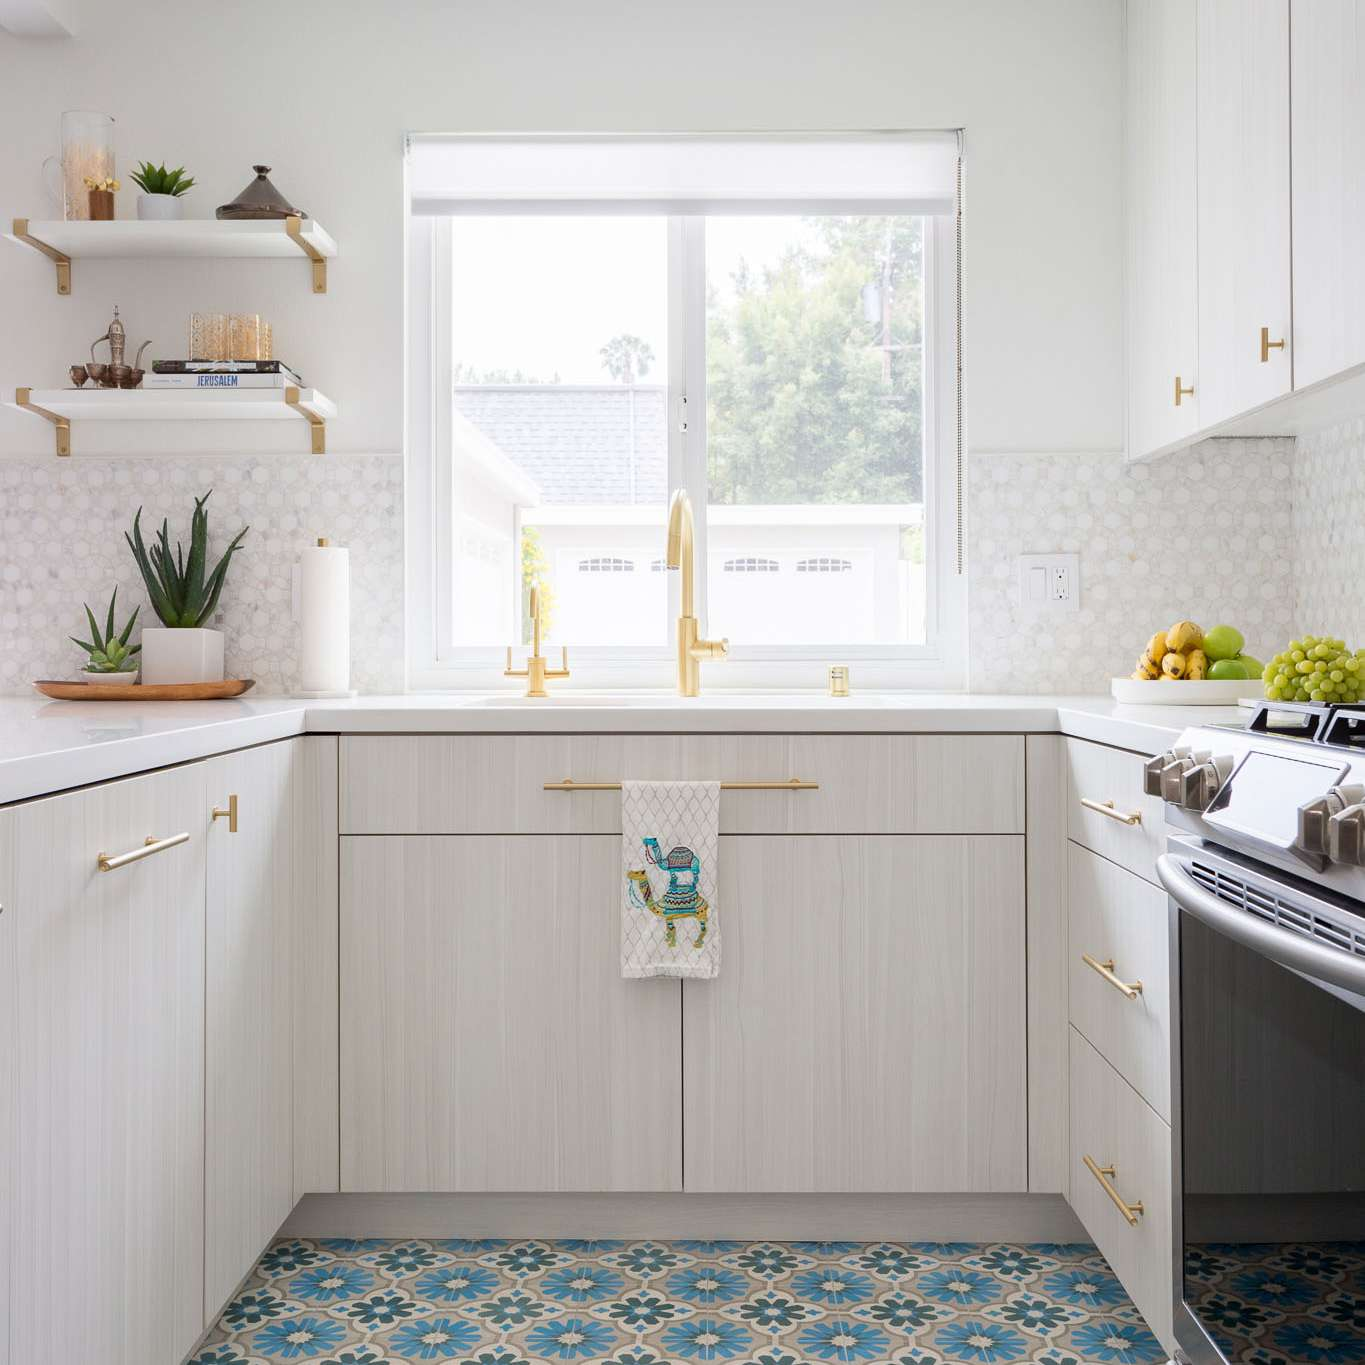 Colorful Floor Tiles in White Kitchen